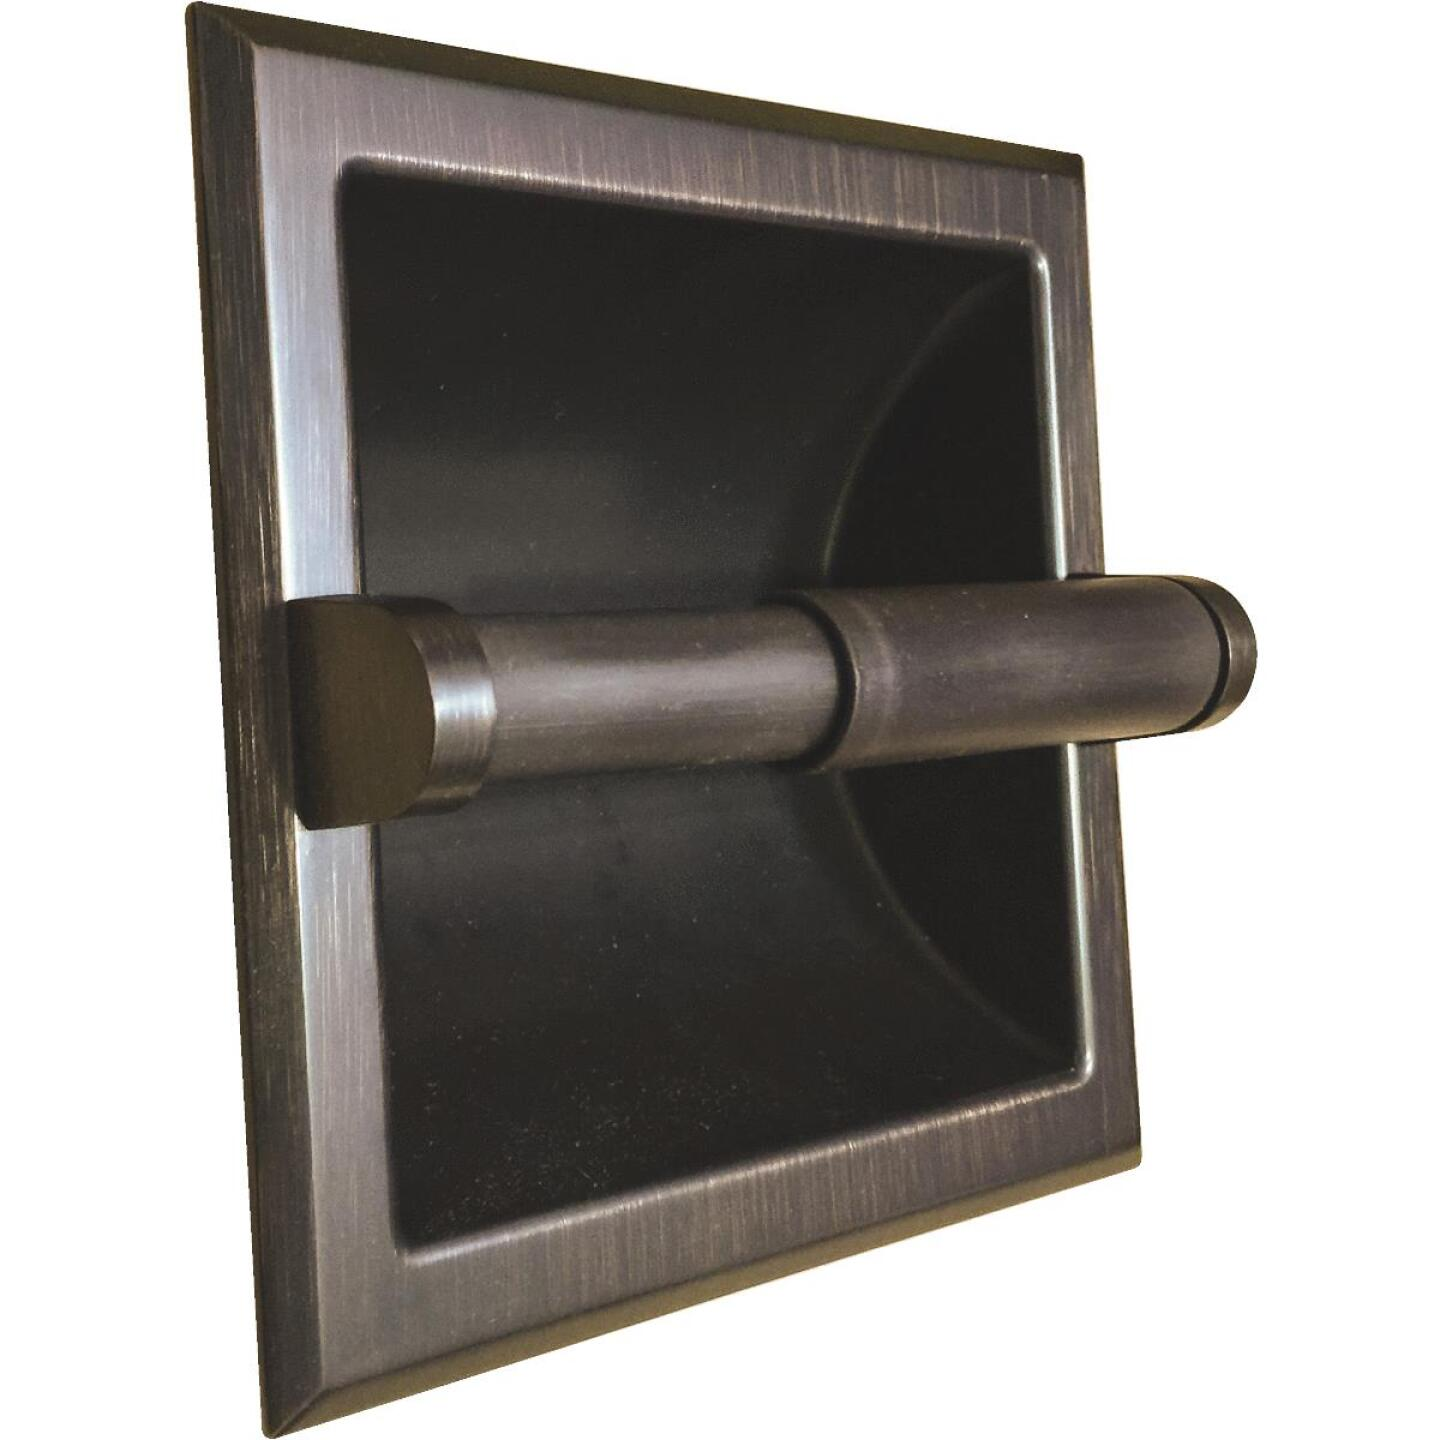 Home Impressions Aria Oil-Rubbed Bronze Recessed Toilet Paper Holder Image 1